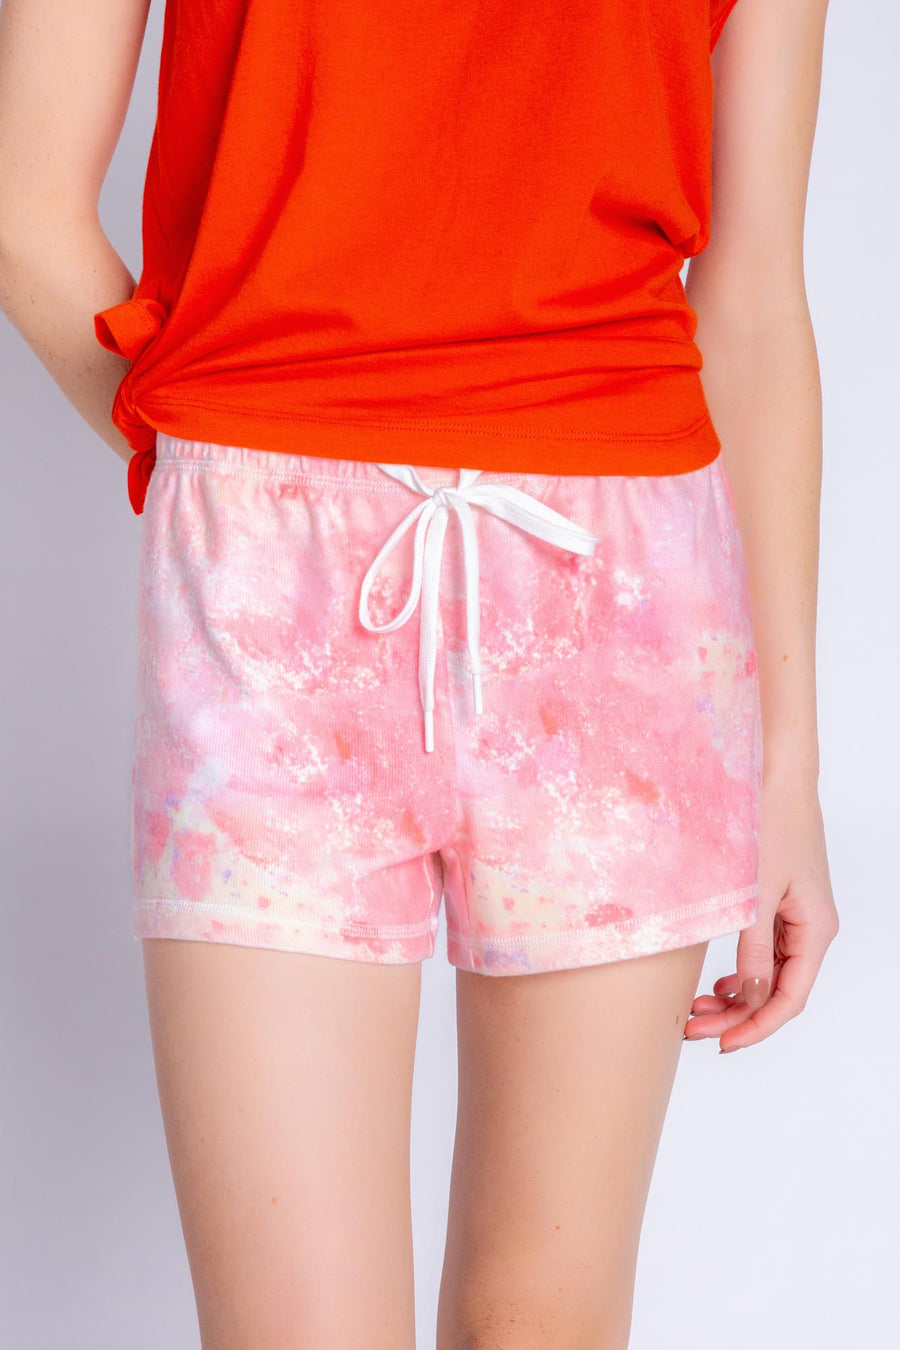 MELTING CRAYONS TIE DYE SHORT - CORAL